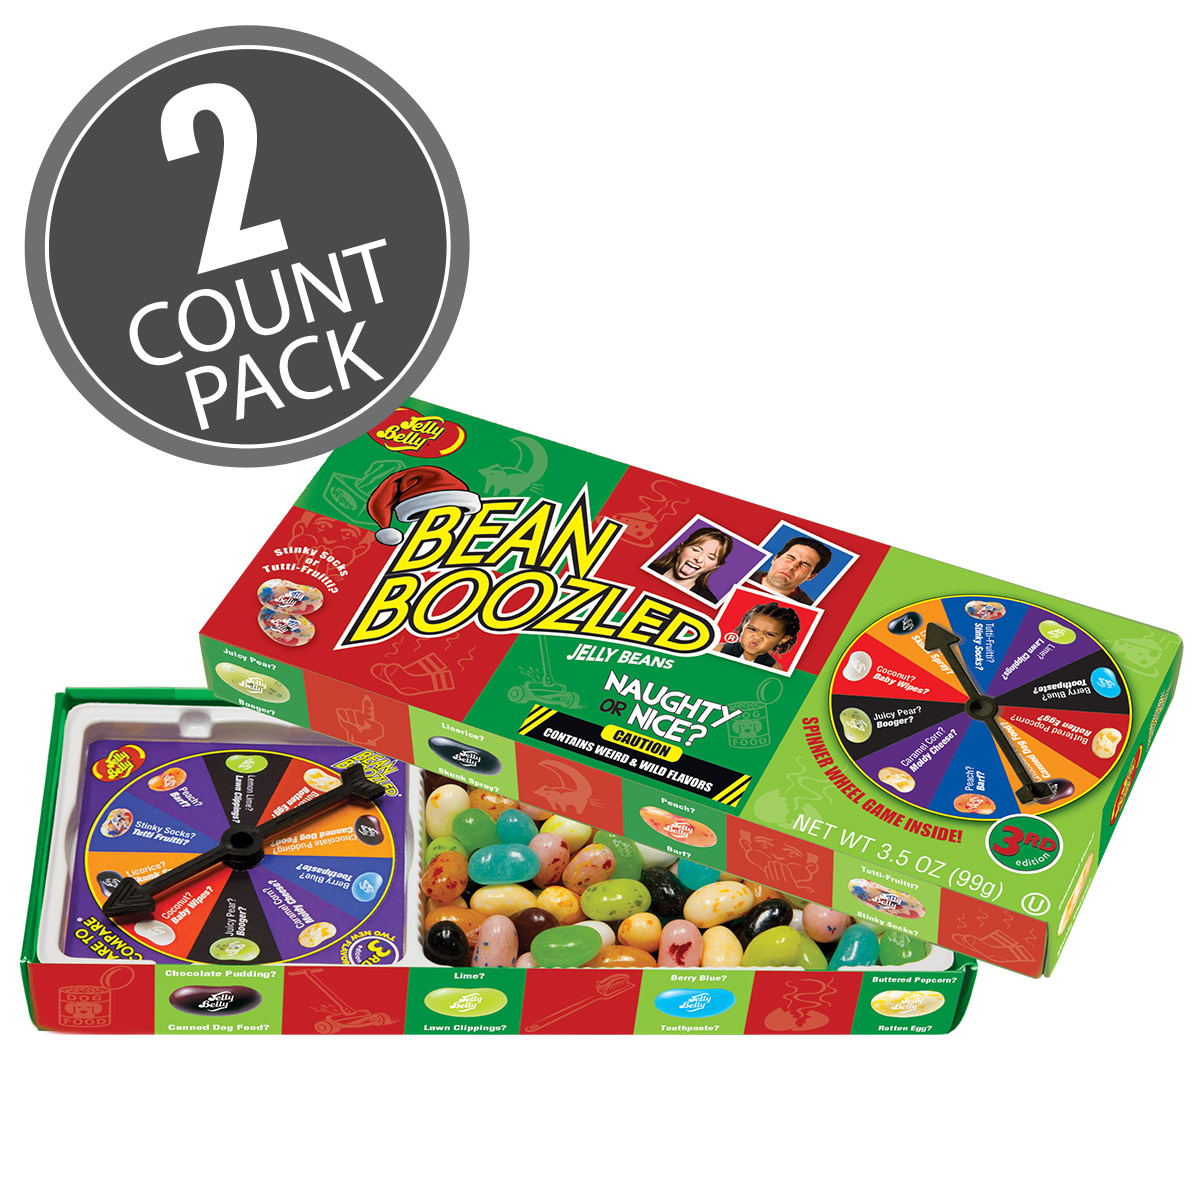 BeanBoozled Naughty or Nice Spinner Jelly Bean Gift Box - 3.5 oz Box - 2 Pack